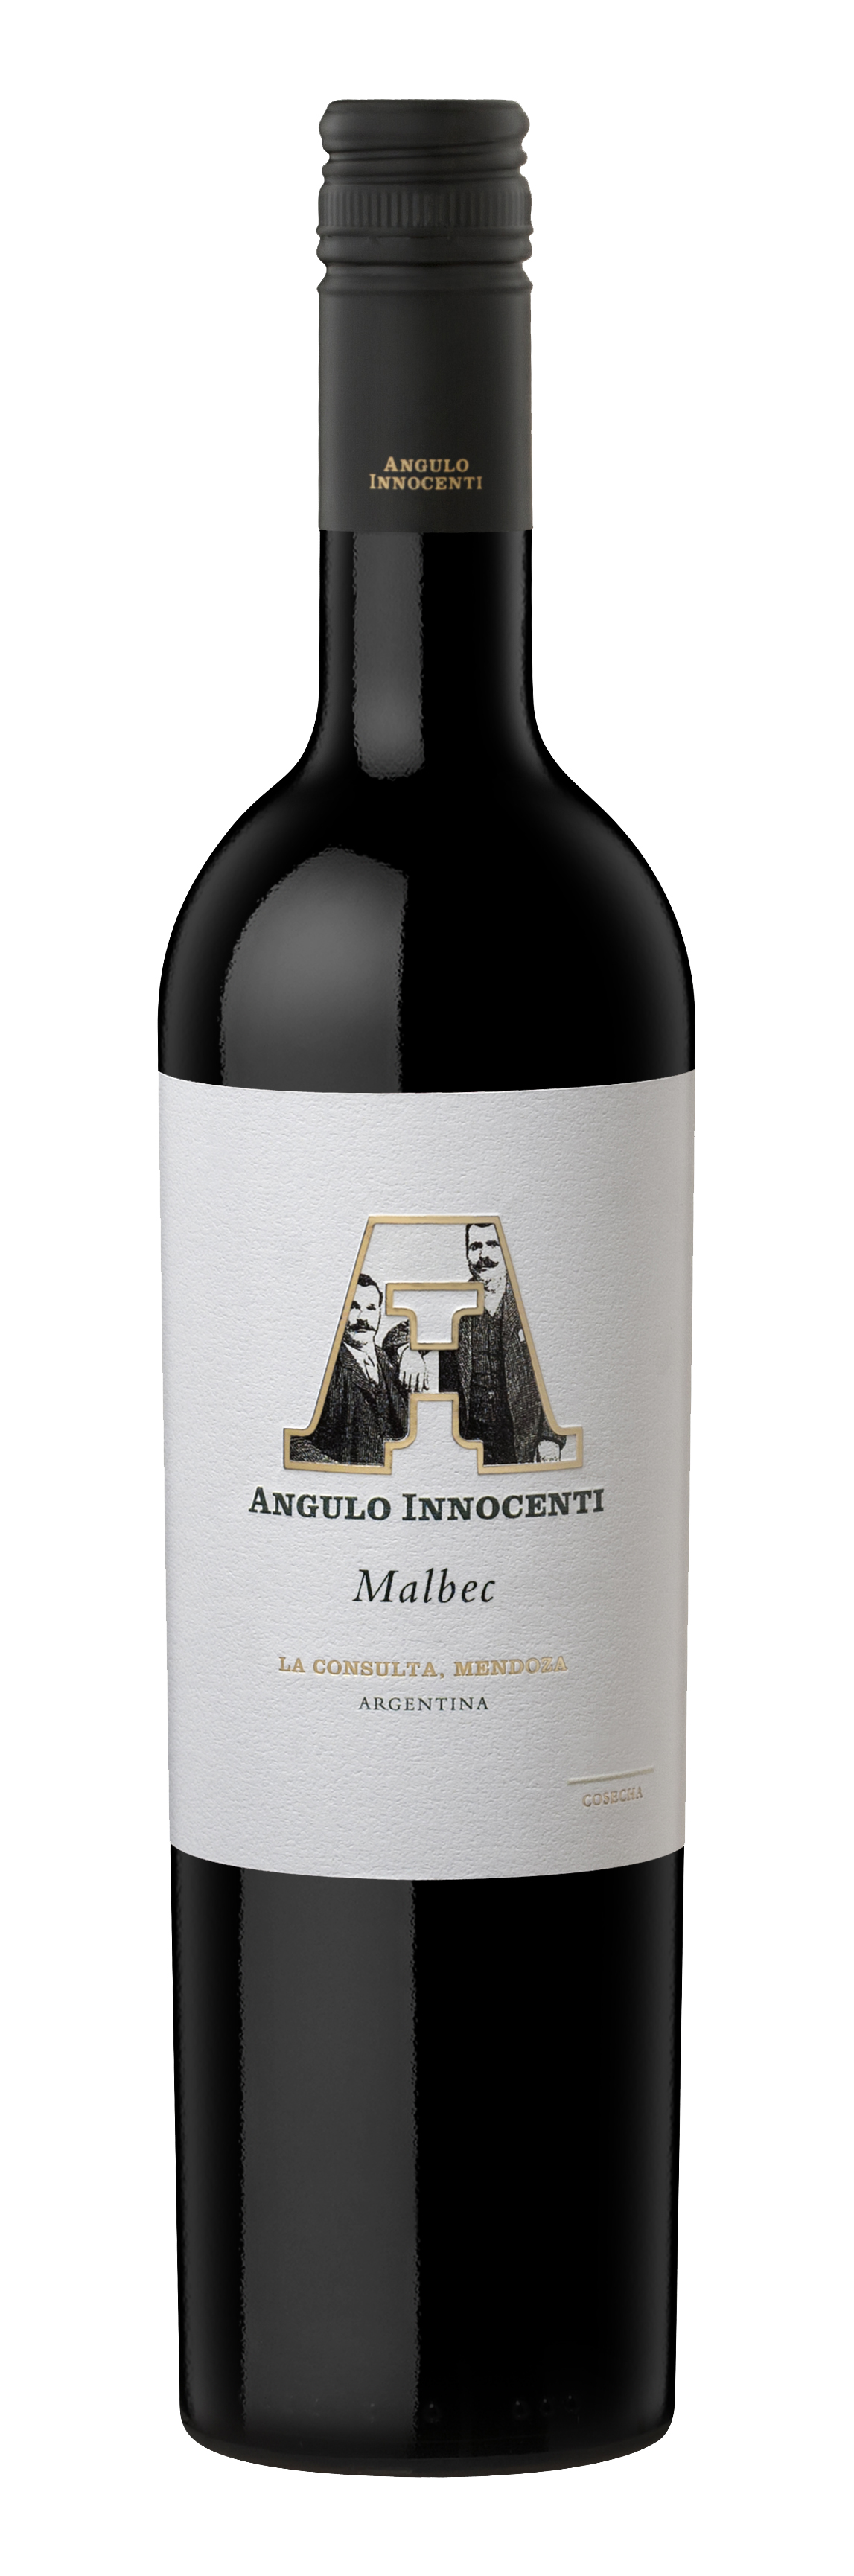 Angulo Innocenti Malbec Bottle.jpg